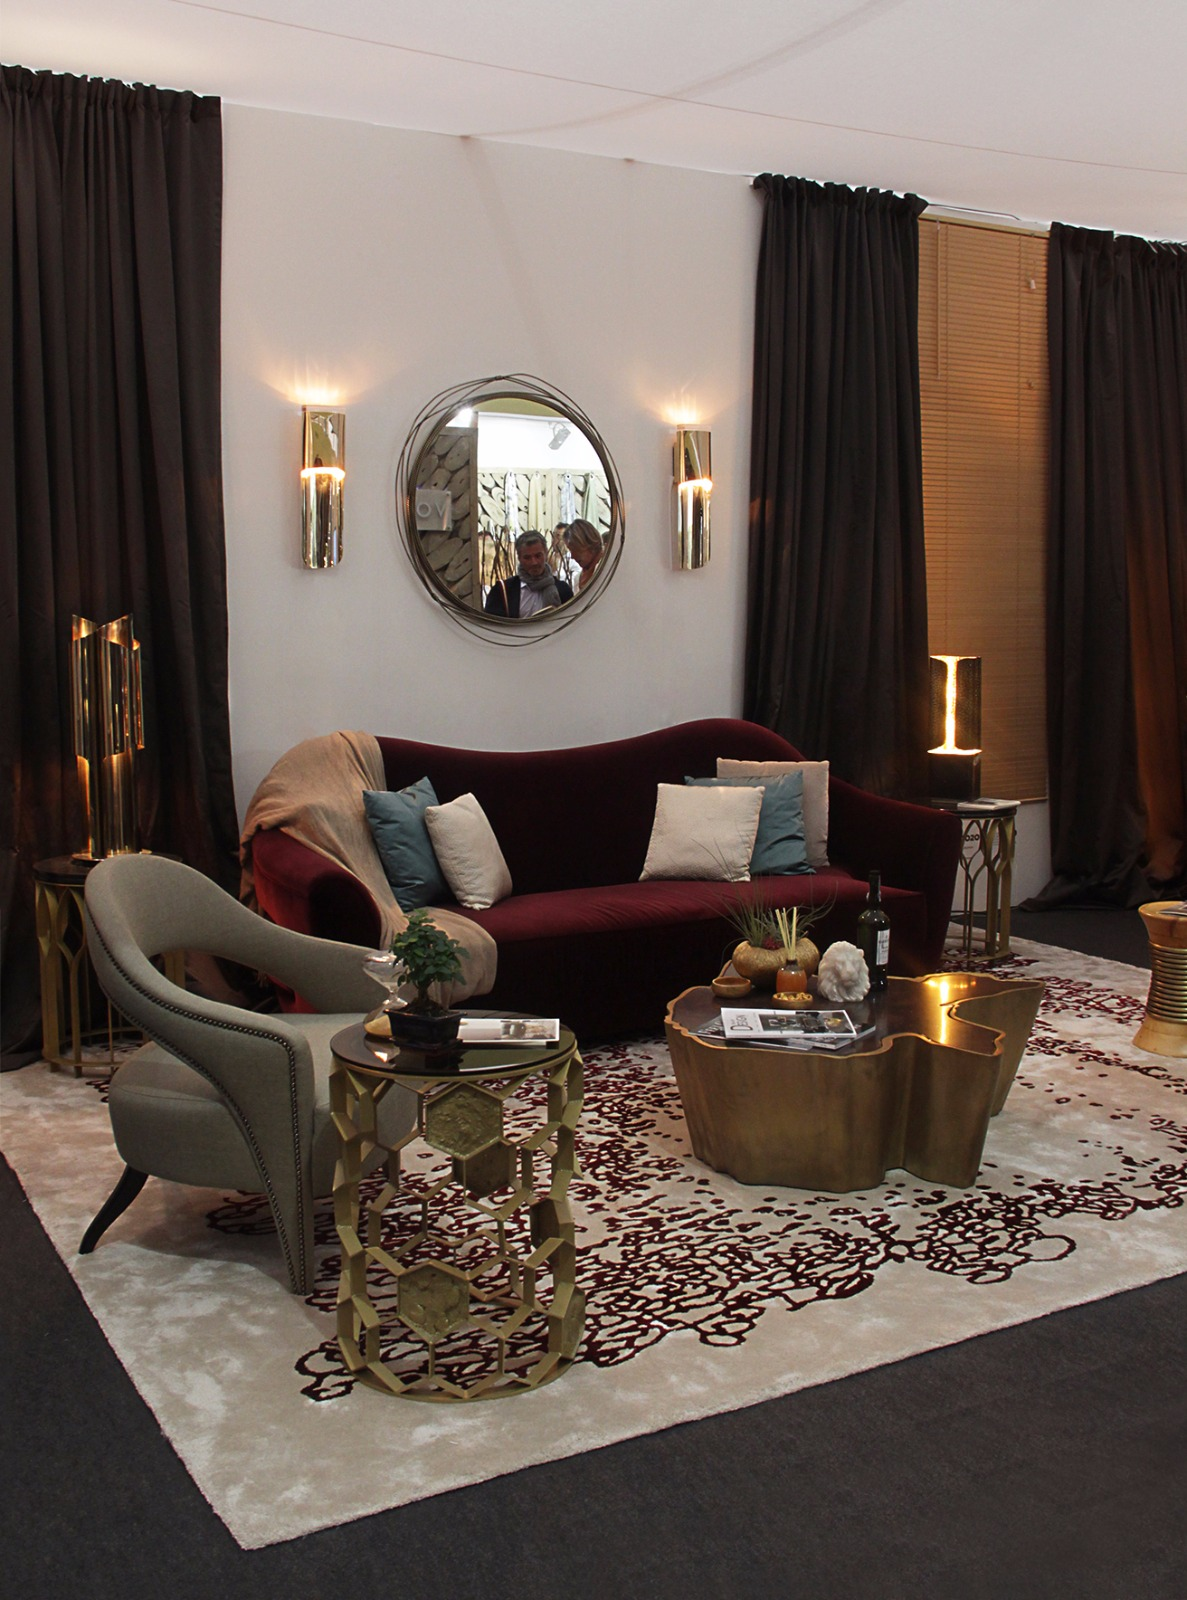 Decorex 2016 highlights 6 decorex 2016 Decorex 2016 in review: the highlights of London's trade show Decorex 2016 highlights 6